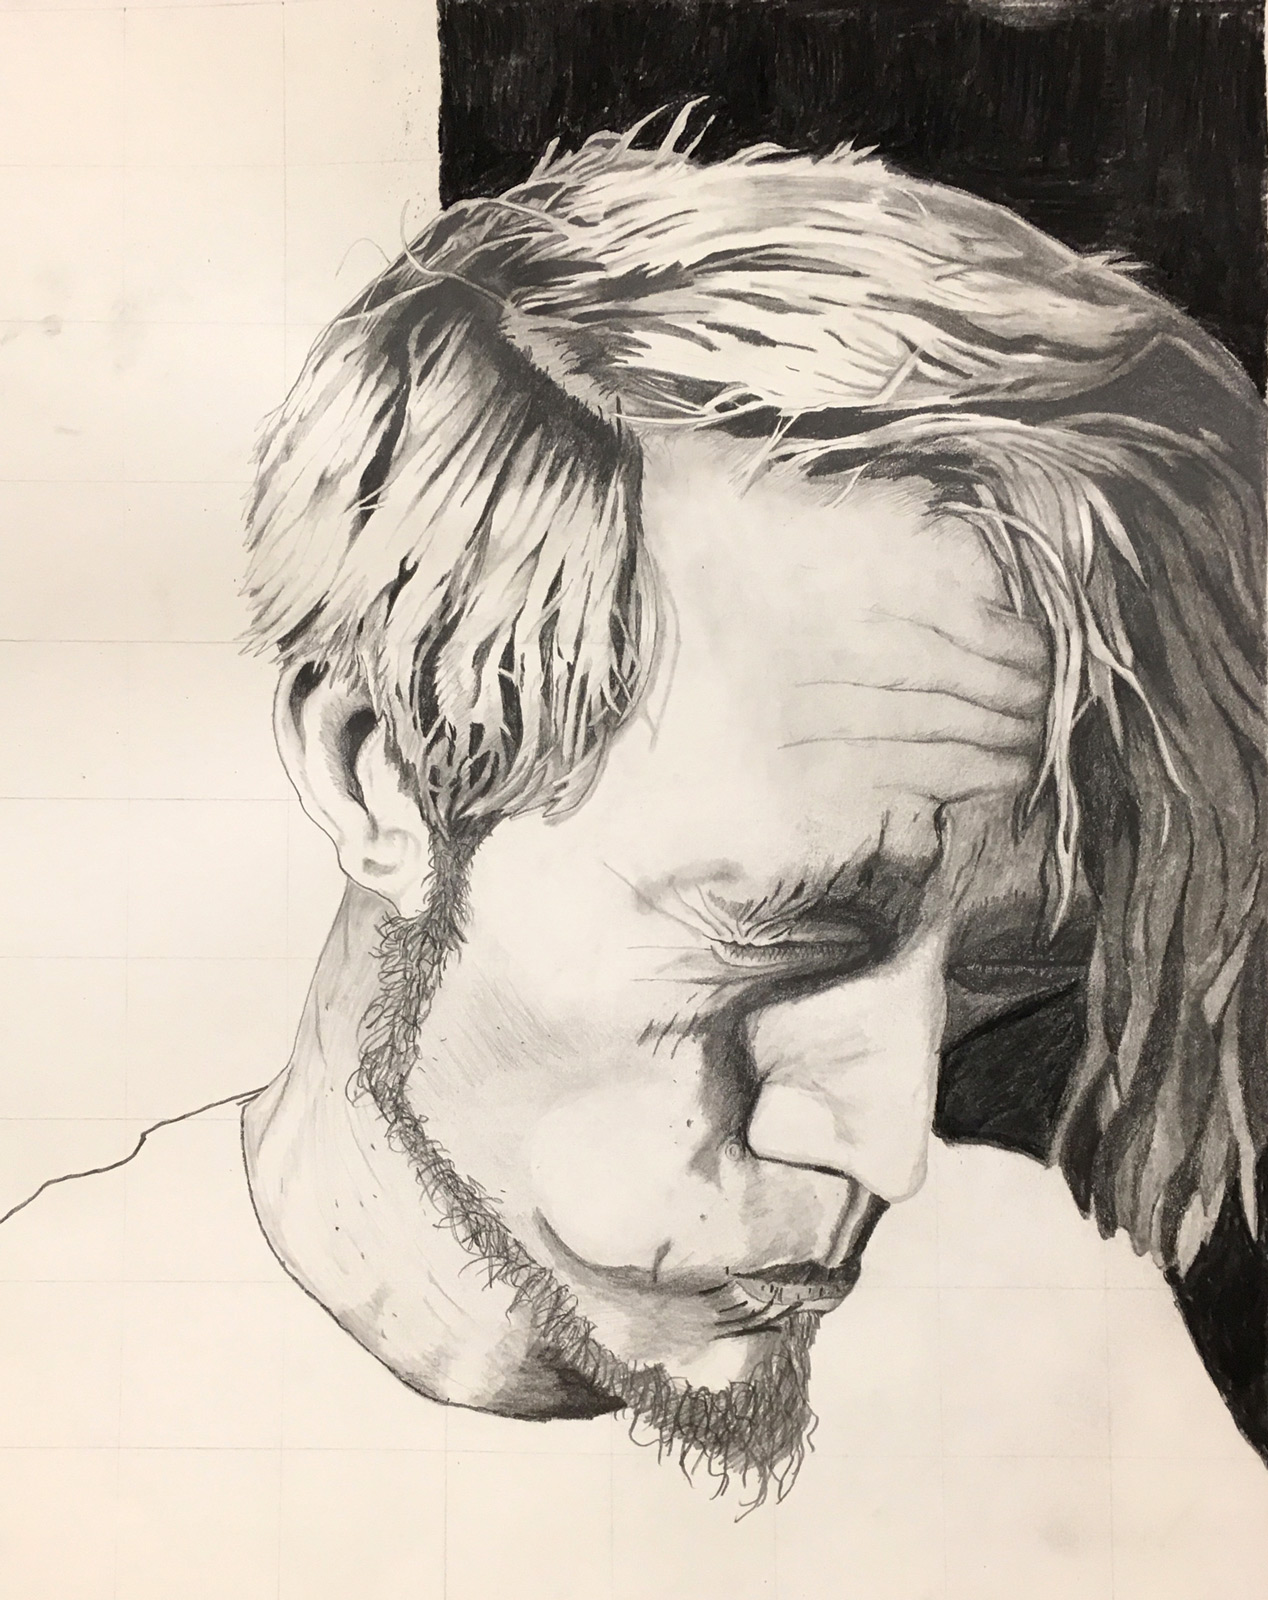 Self-portrait in charcoal on paper by an SVC art student